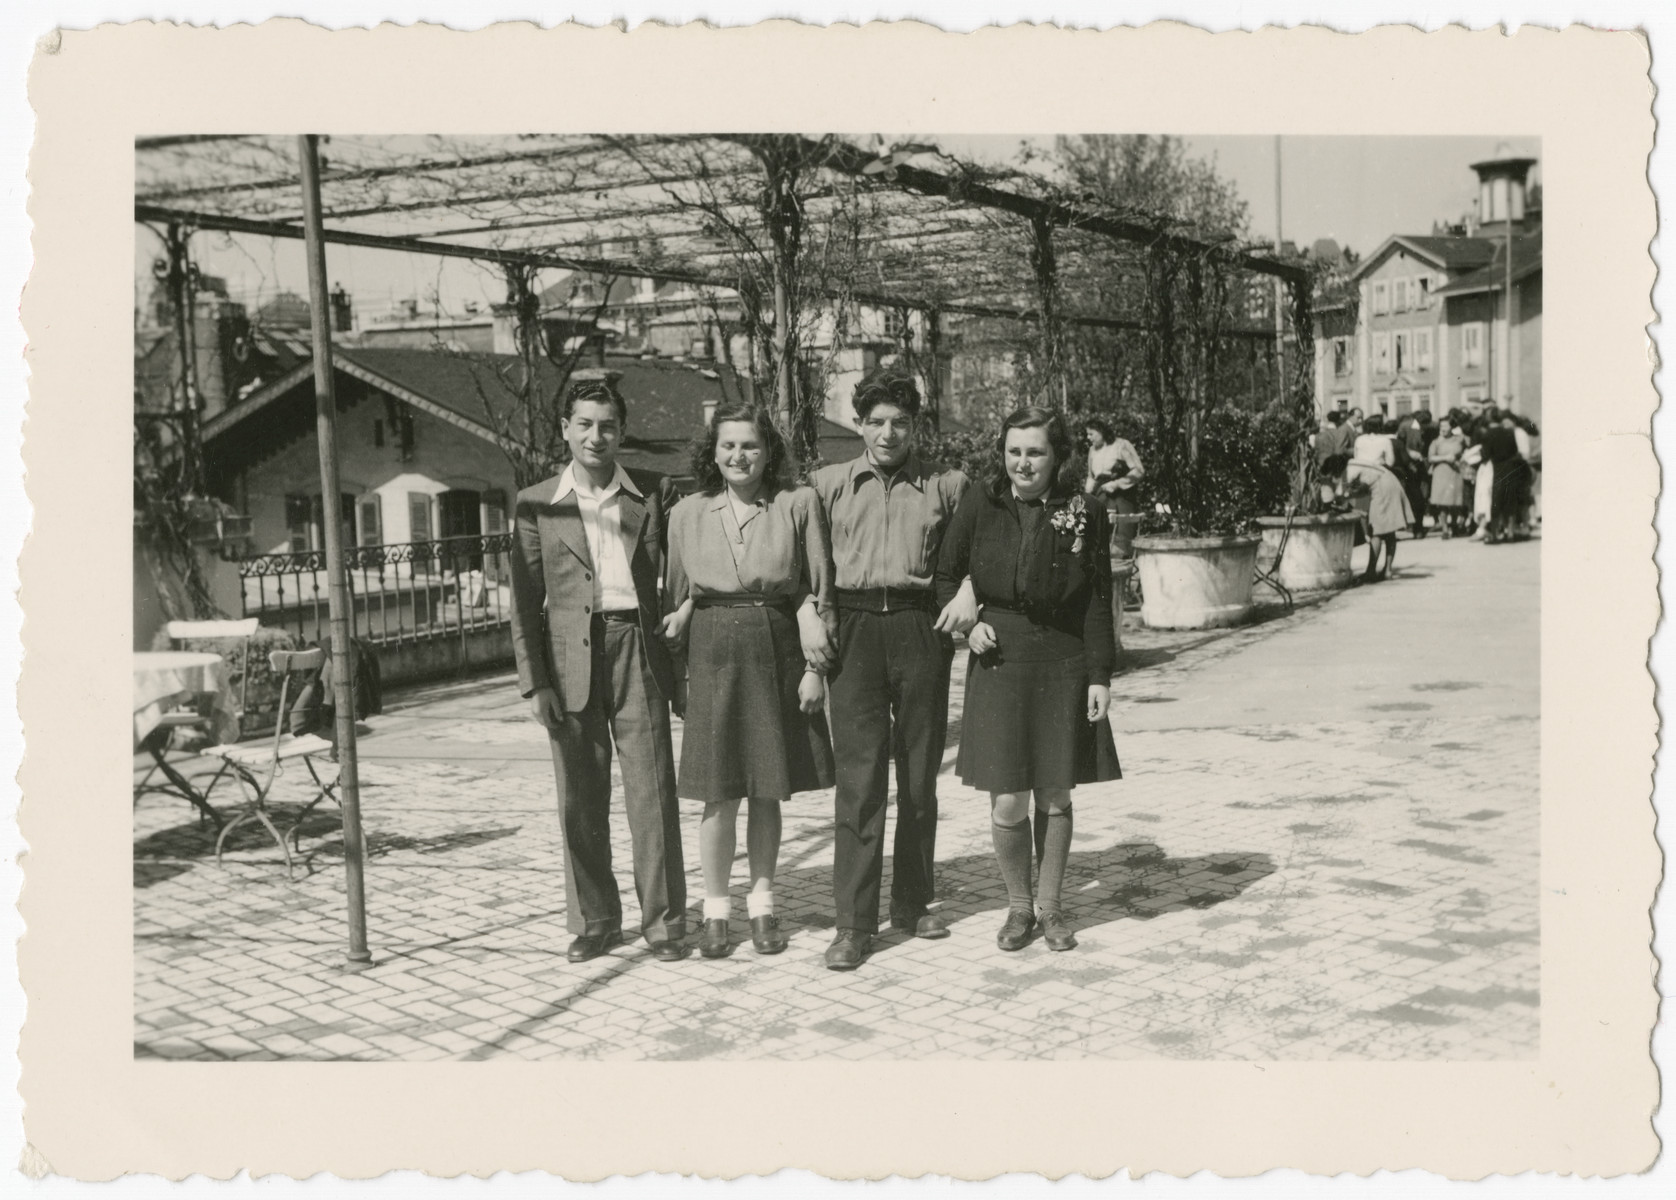 Four young people pose together on a street in Montreux, Switzerland after arriving on the Kasztner transport.  Pictured from left to right are Shlomo, Eva Weinberger, Menachem Weingarten and Gitel (from Chust).